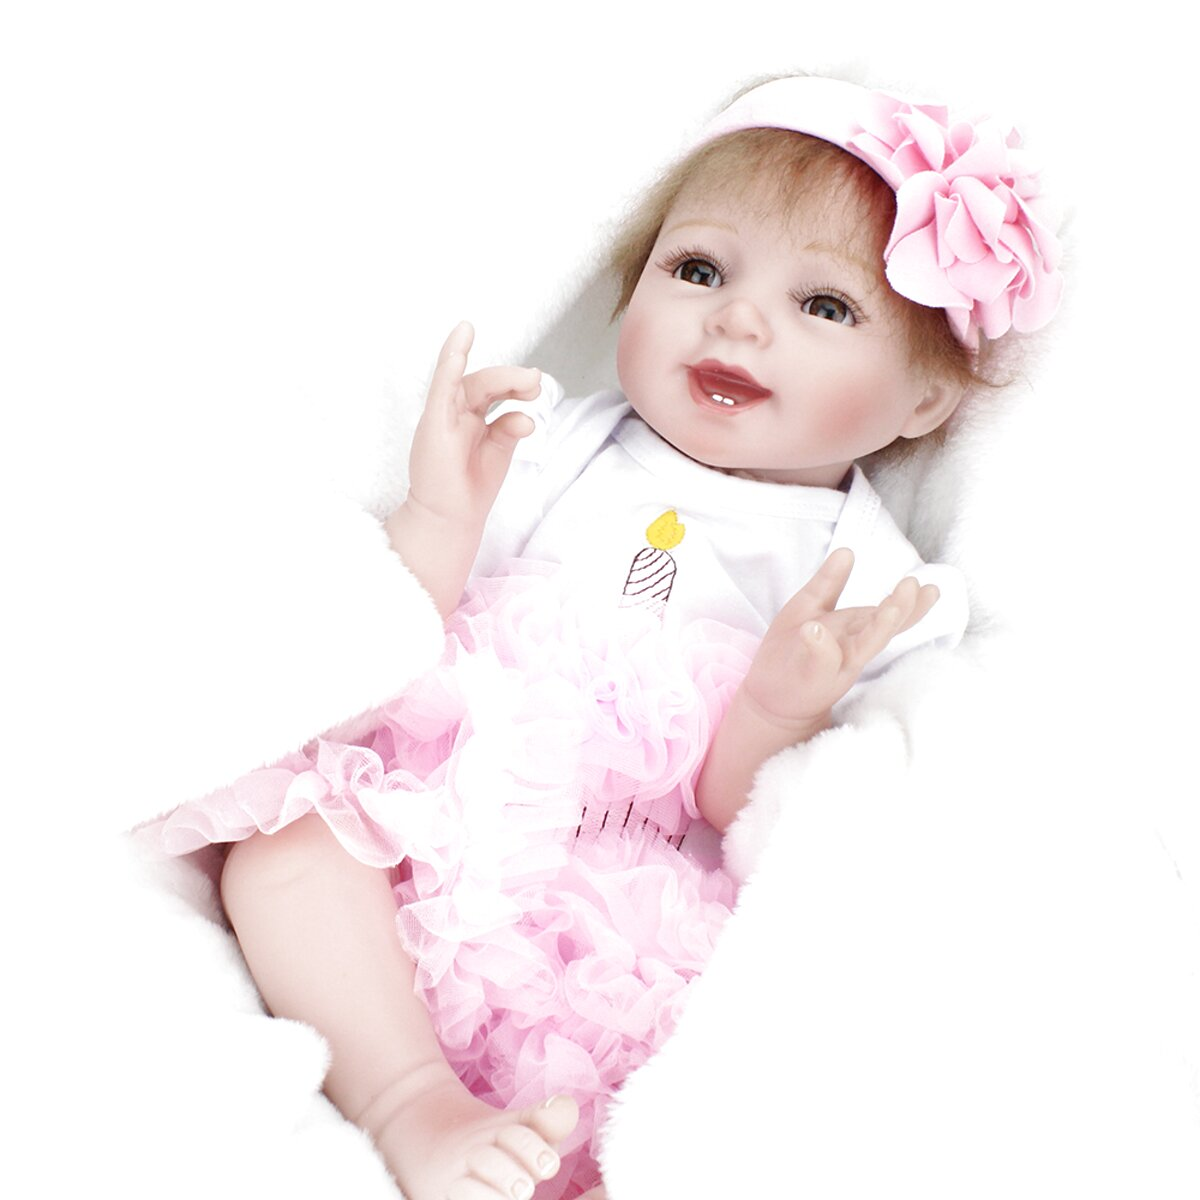 Reborn Baby Clothes for sale in UK | View 61 bargains